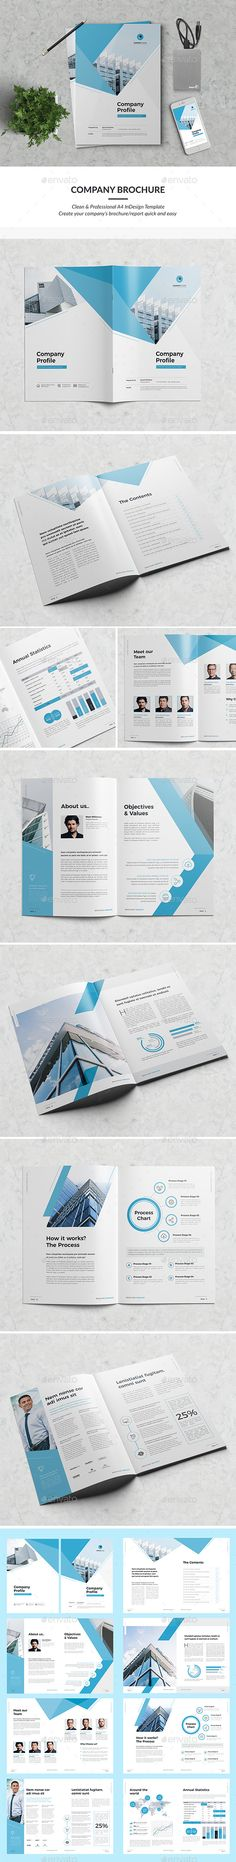 Minimal Company Profile 16 Pages by AdobeRashad | GraphicRiver